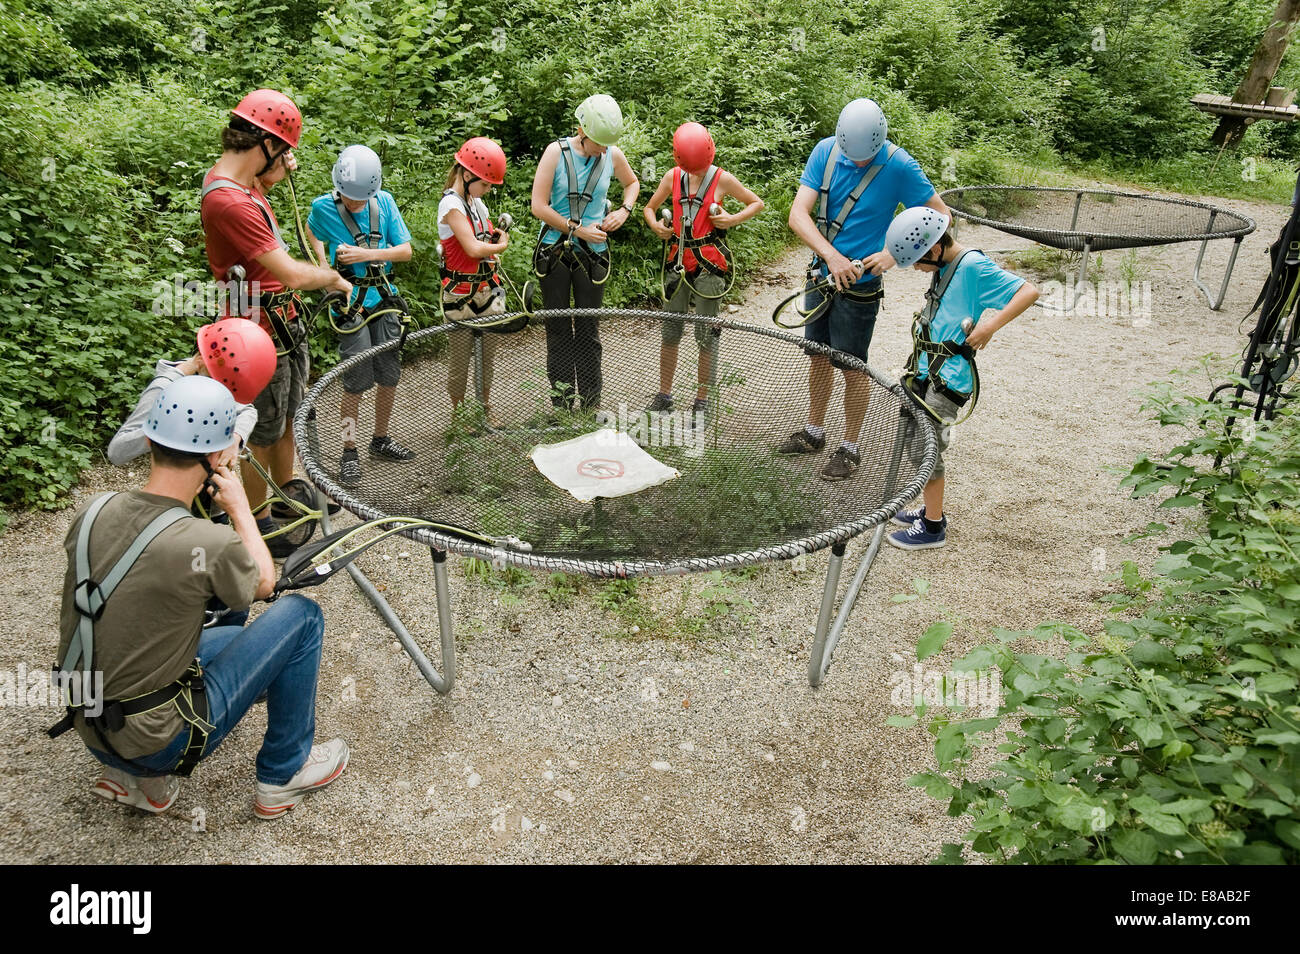 Young woman giving instruction to group of people for climbling crag - Stock Image